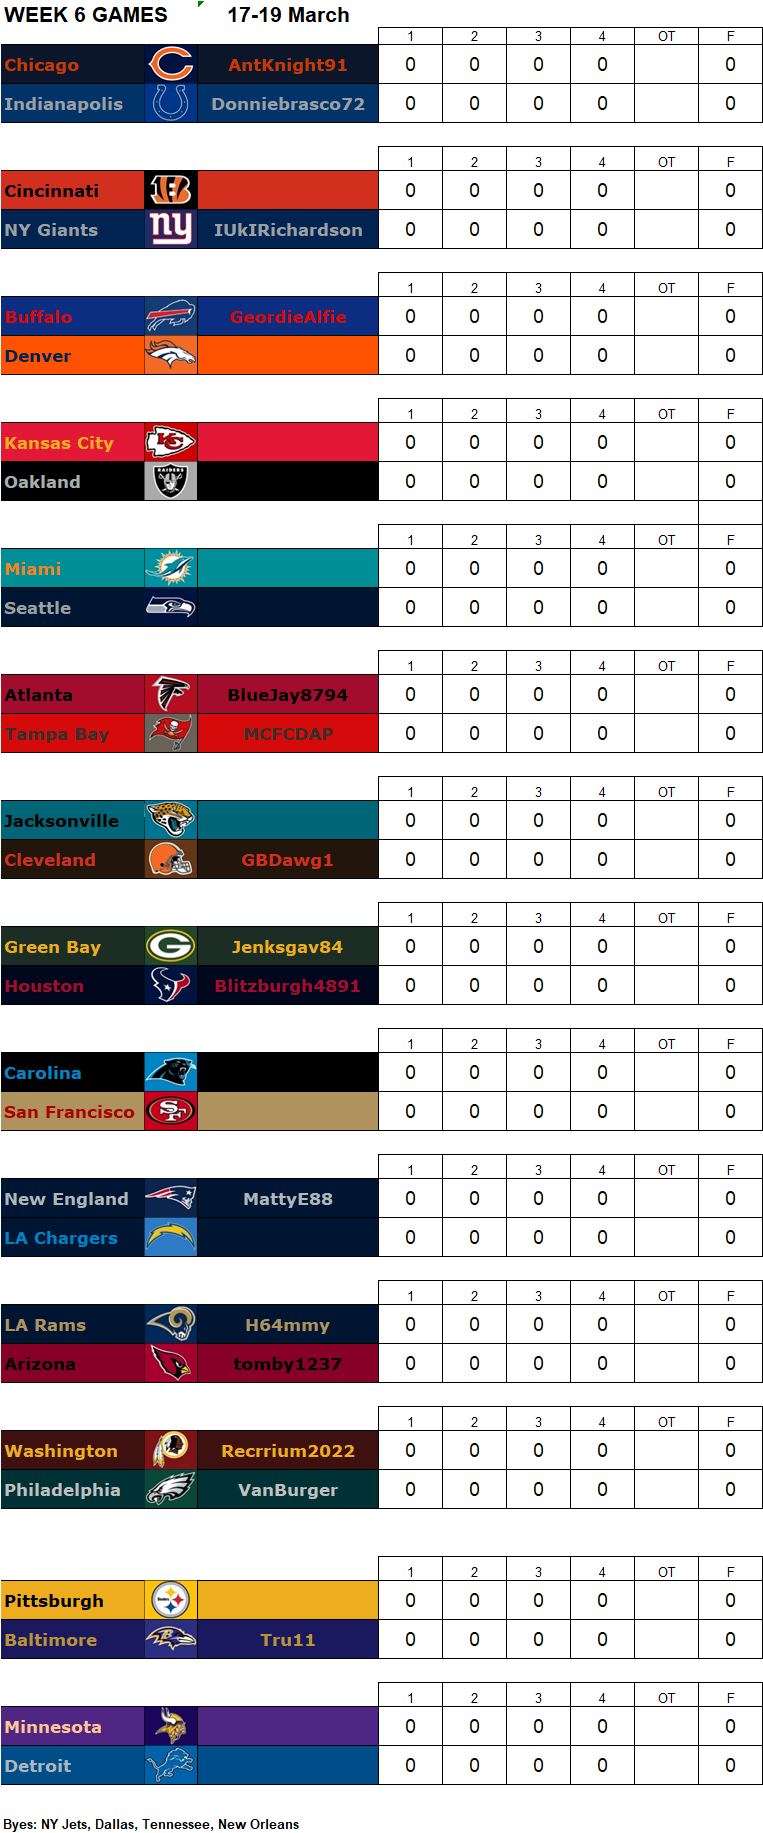 Week 6 Matchups, 17-19 March **Amended** W6g13